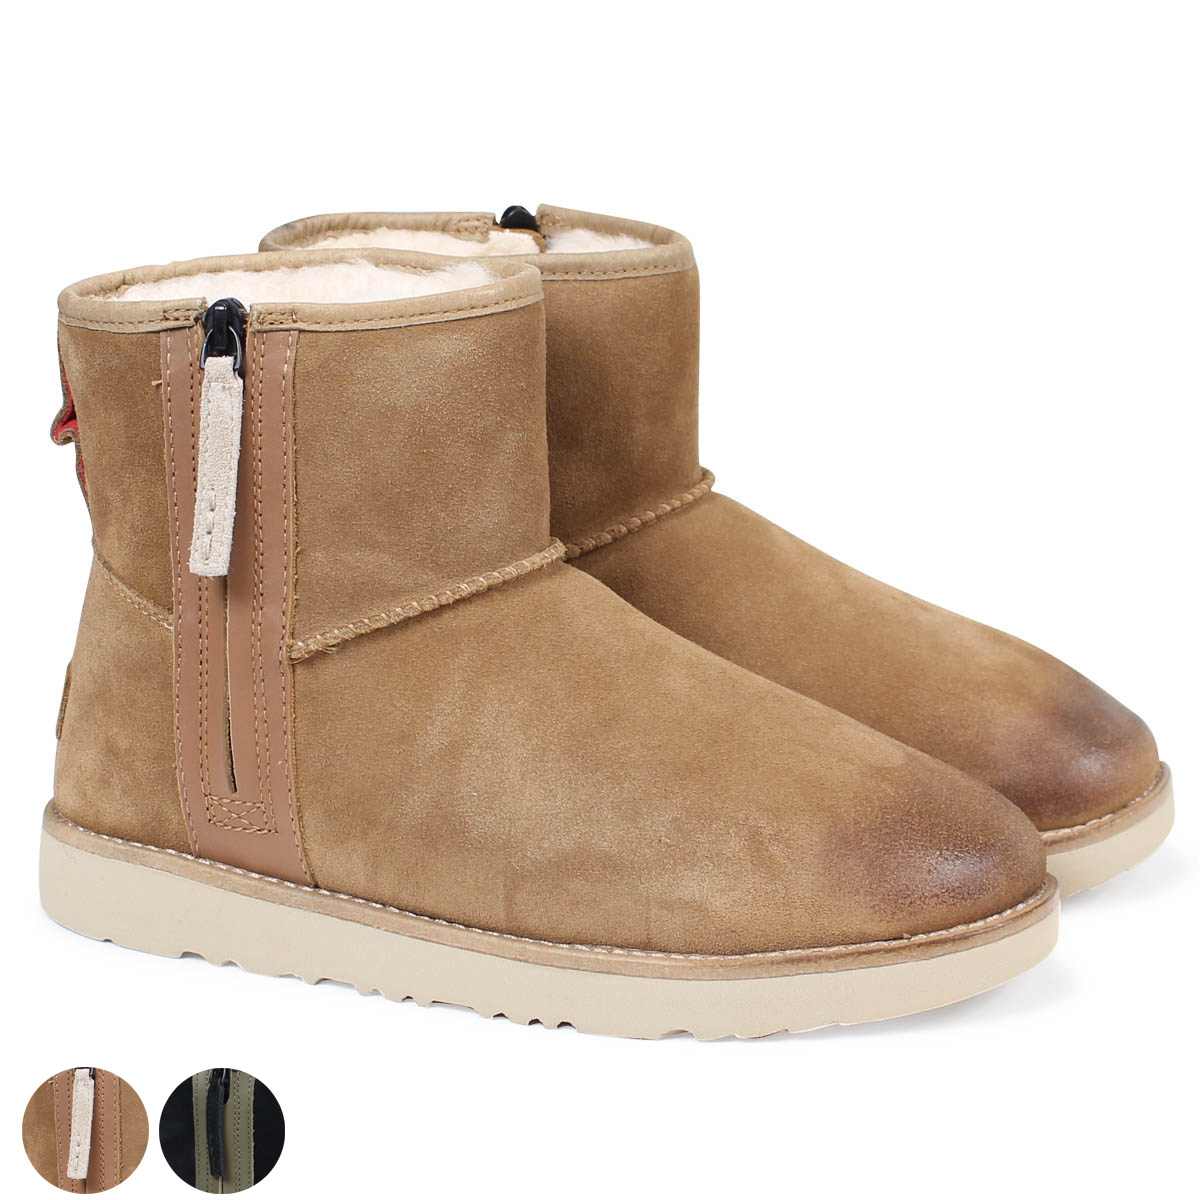 UGG MENS CLASSIC MINI ZIP WATERPROOF アグクラシックミニムートンブーツメンズ 1018453 sheepskin suede [11/15 Shinnyu load]